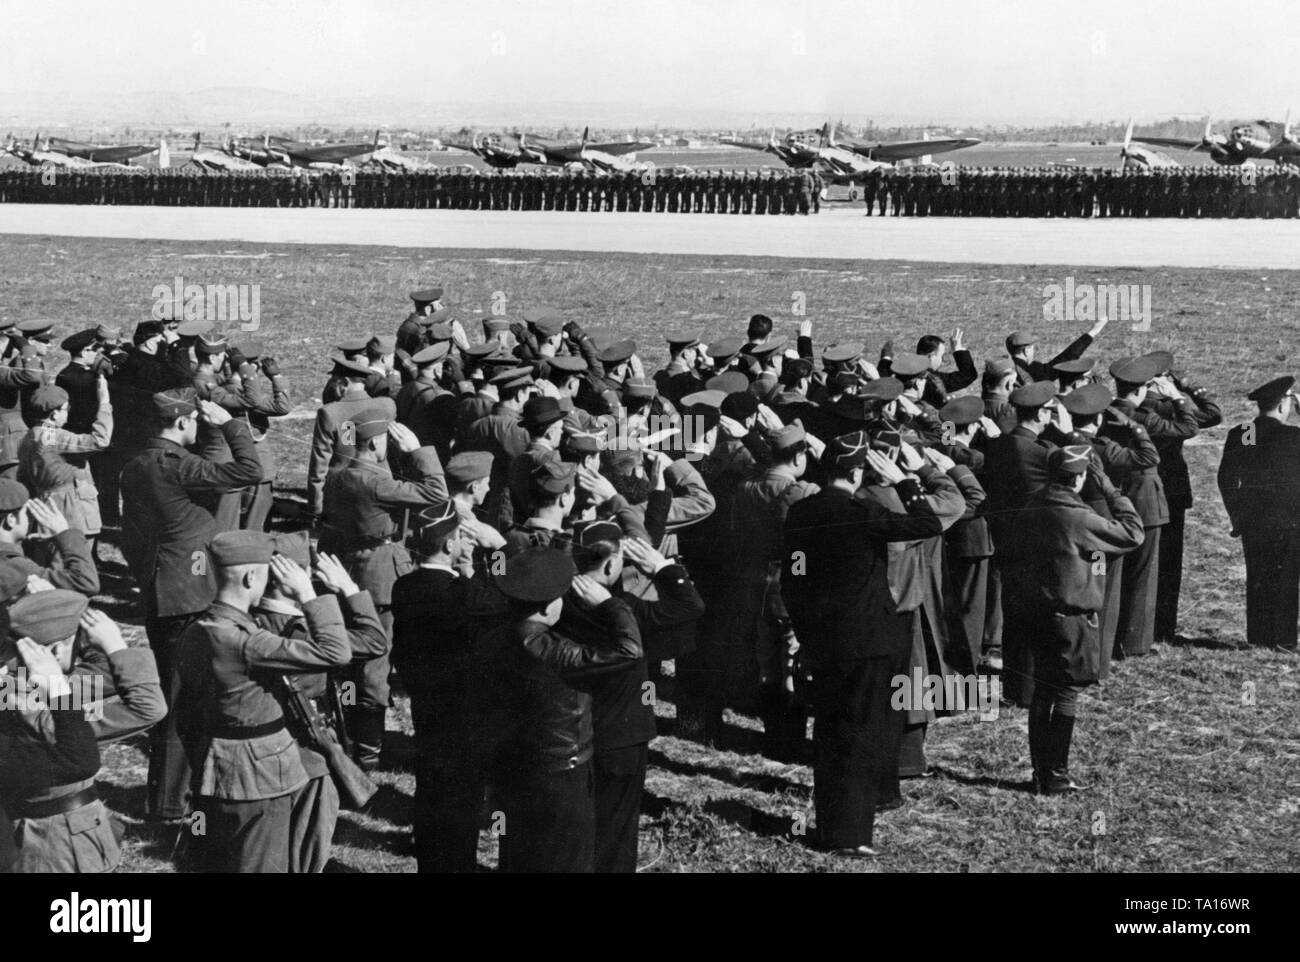 Photo of a parade of the Condor Legion on the airfield of Saragossa on the occasion of the Day of the Luftwaffe (airforce) on March the 1st, 1939. Soldiers have lined up on the airfield in the background. Behind, there are fighter aircrafts, type Messerschmitt Bf 109, and combat bombers, type Heinkel He 111. In the foreground German and Spanish soldiers are saluting. - Stock Image